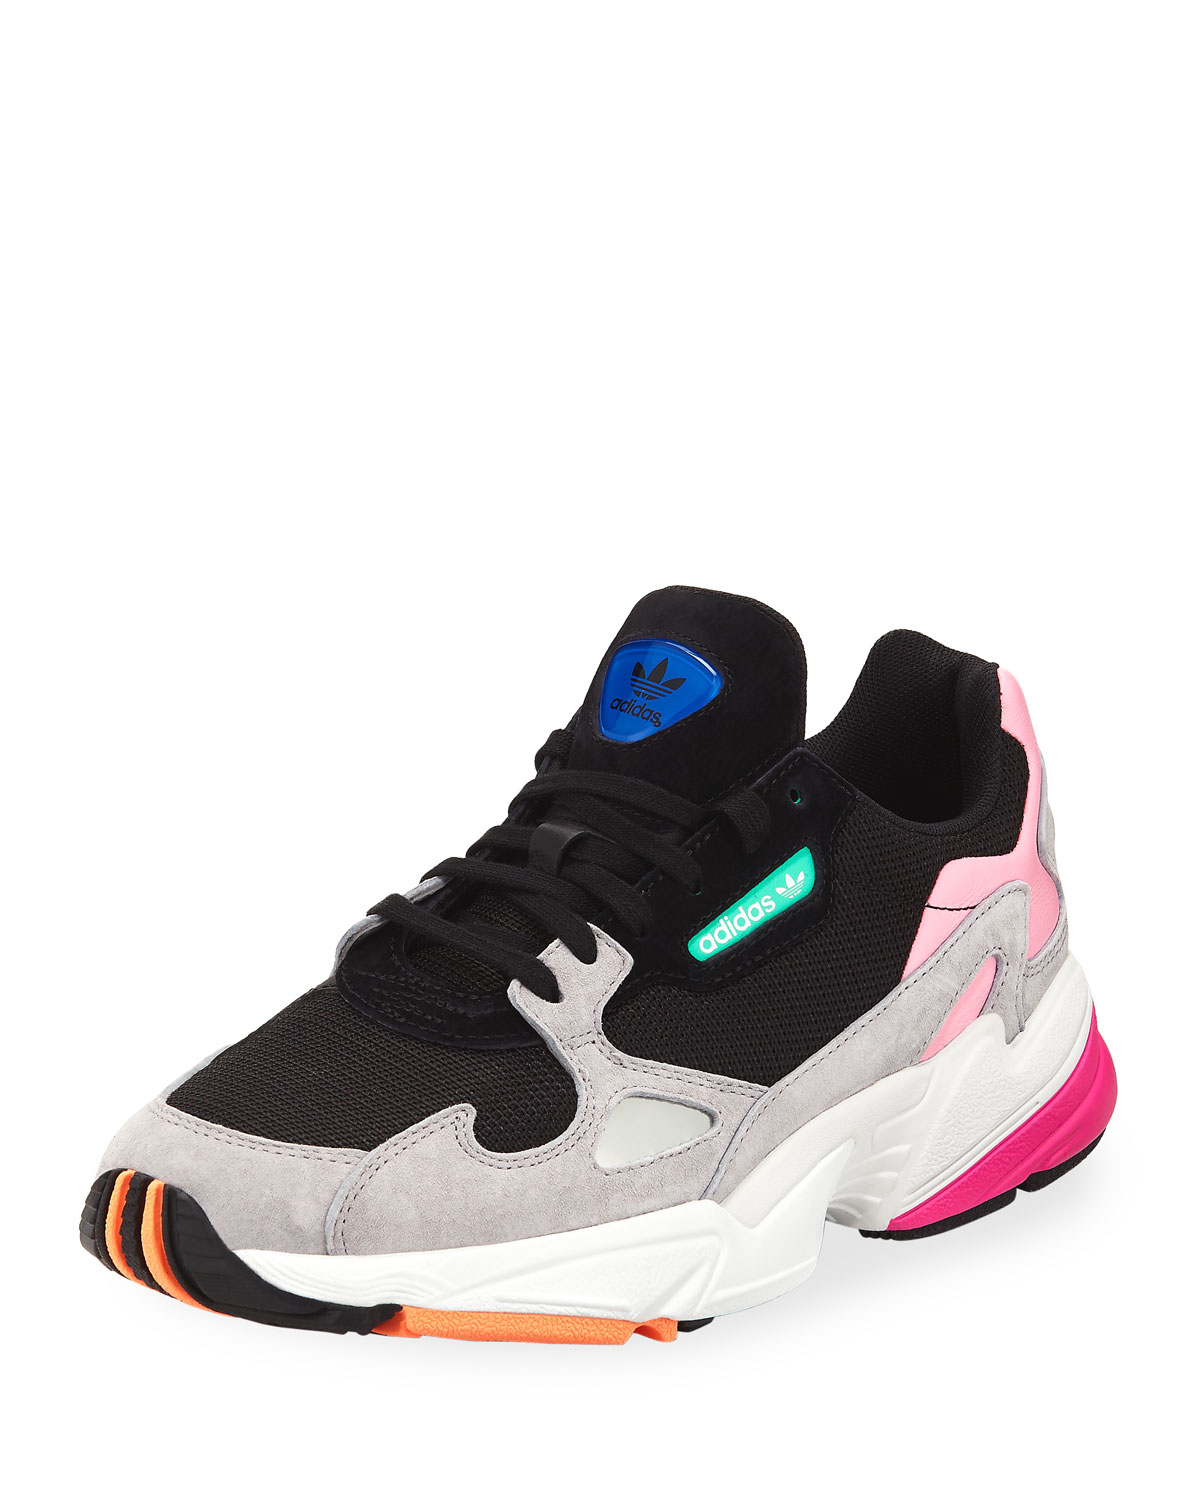 4f54ec7fad1 Adidas Originals Women s Falcon Color-Block Lace Up Sneakers In Black  Black   Light